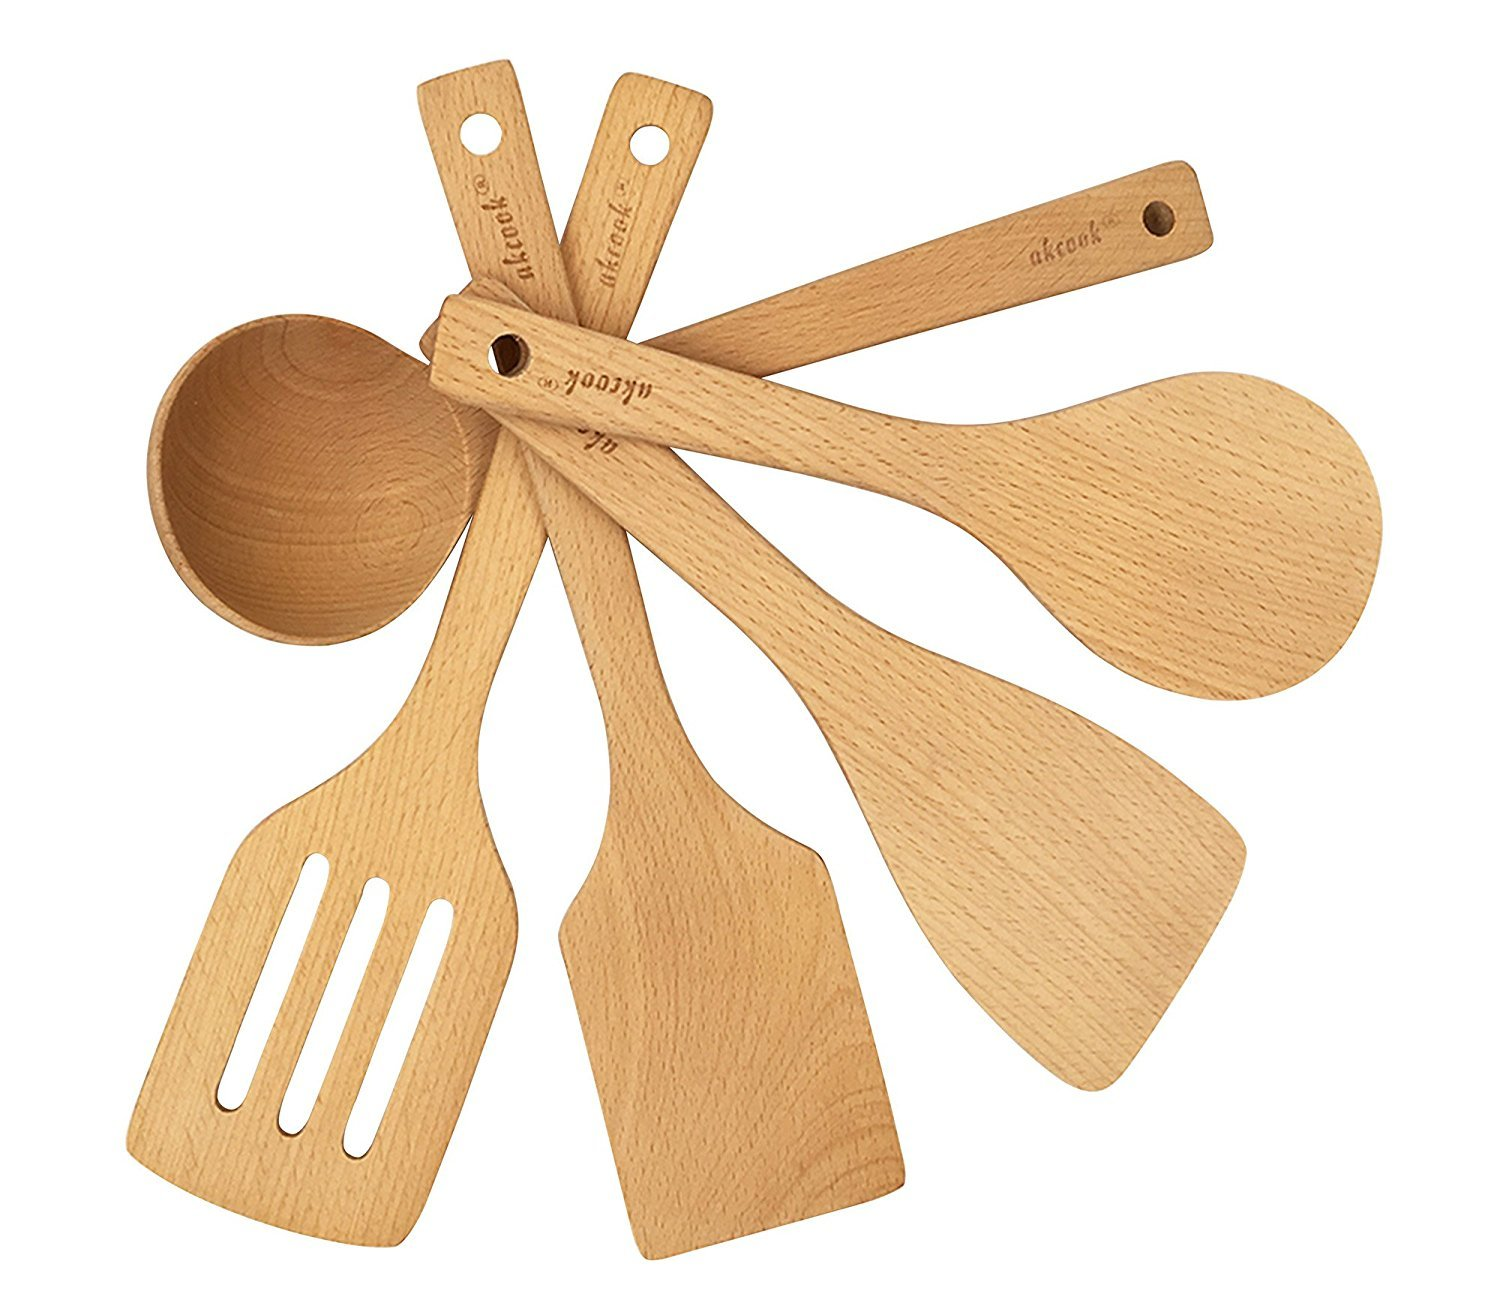 Artelegno Spoon Rest Cheap Wood Eating Utensils Find Wood Eating Utensils Deals On